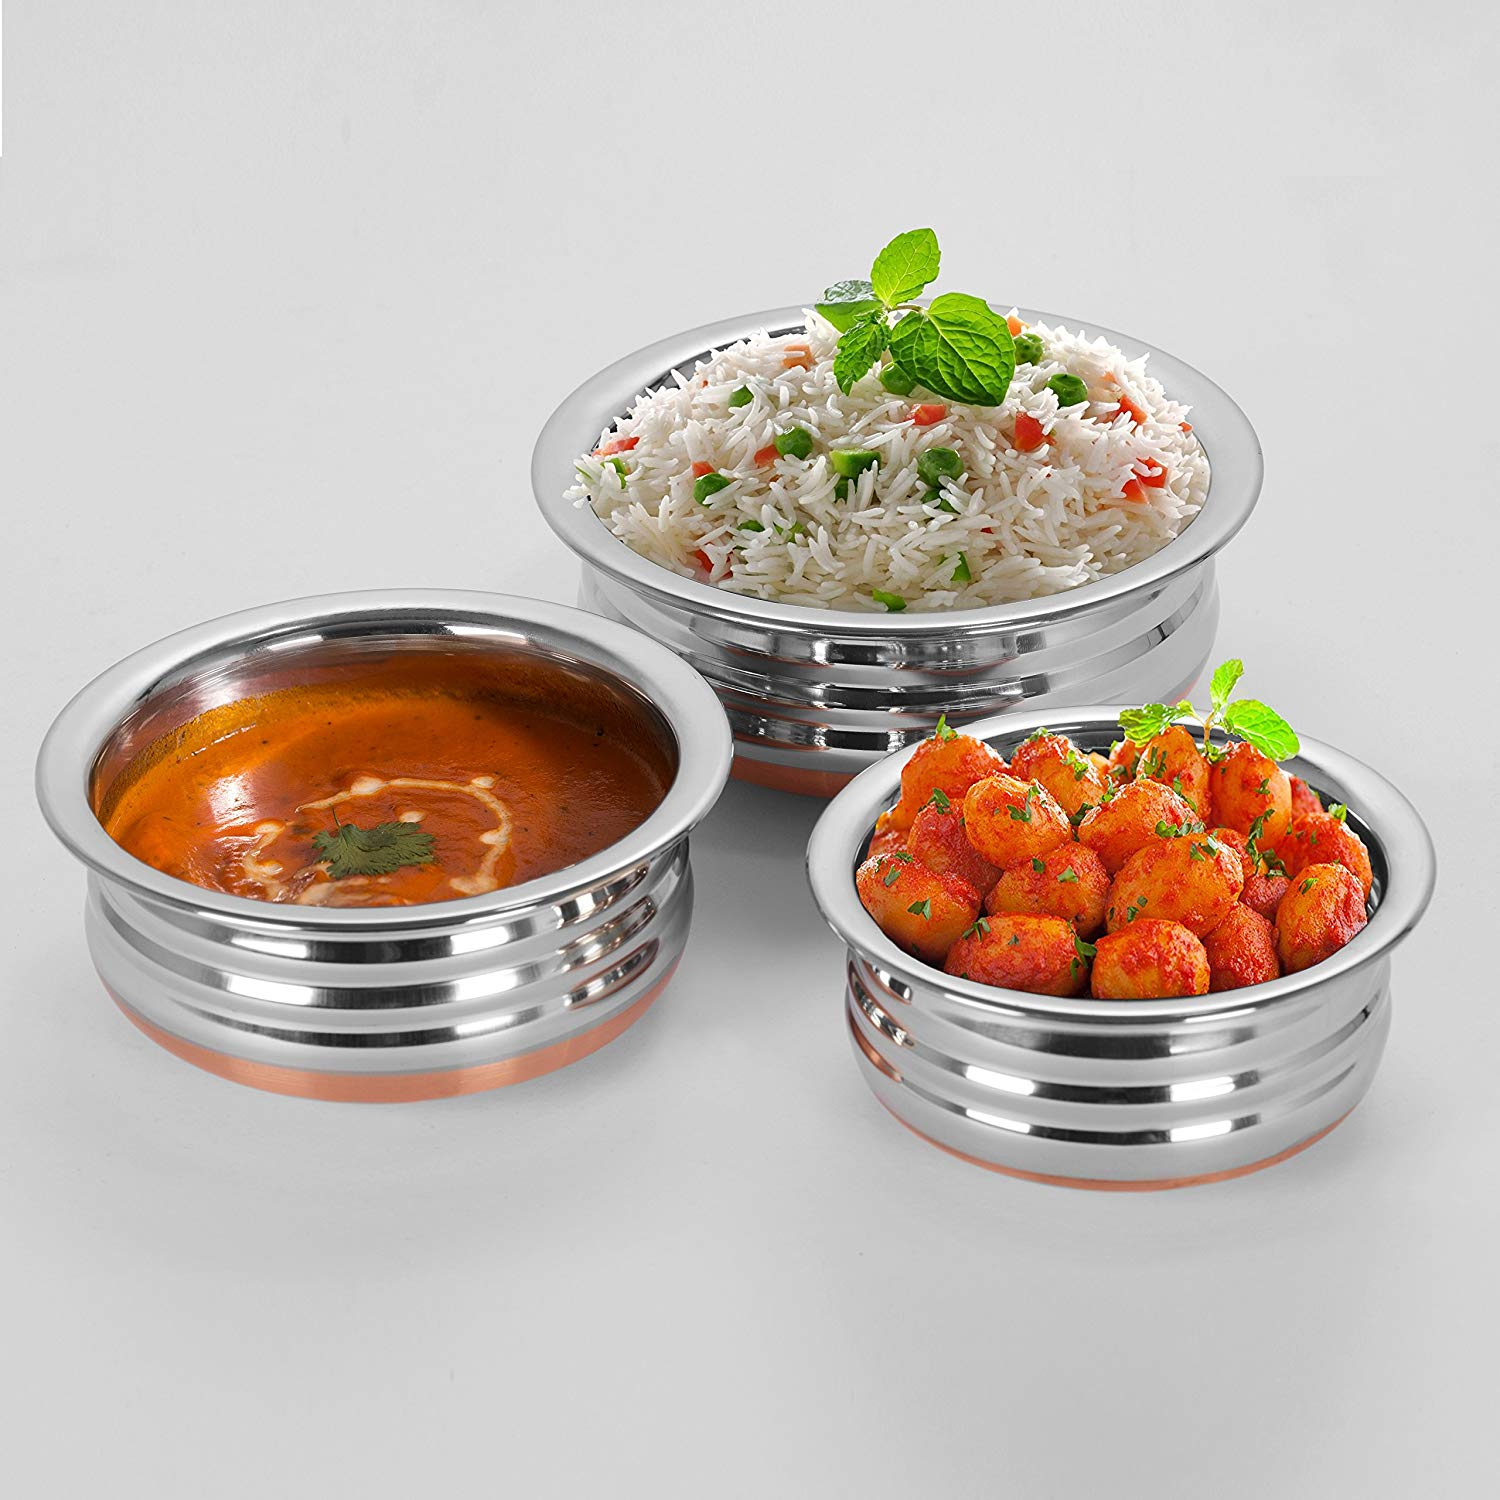 Sumeet Stainless Steel Copper Bottom Urli/Handi / Pot For Cookware & Serveware - 3 Pcs Set (1 No 1.3L, 1 No 1.9L, 1 No 2.7L Prabhu Chetty Without Lid.)